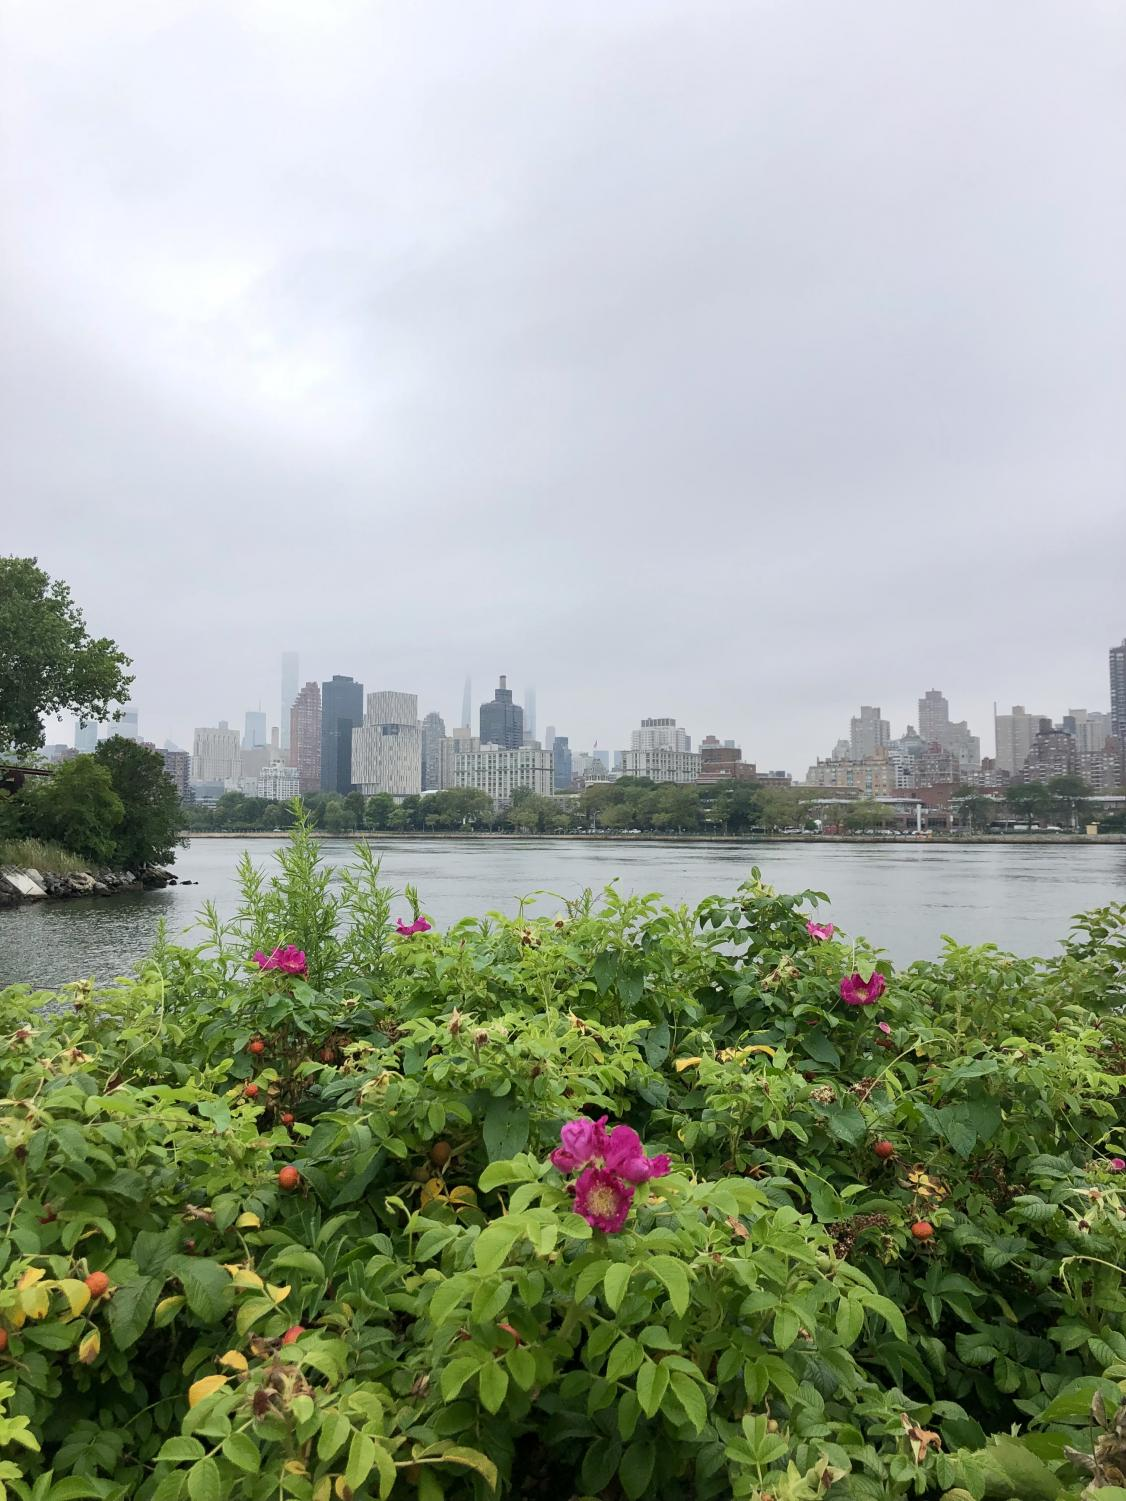 green leaves with pink flowers in front, a view of Roosevelt Island and the Upper East Side in the background